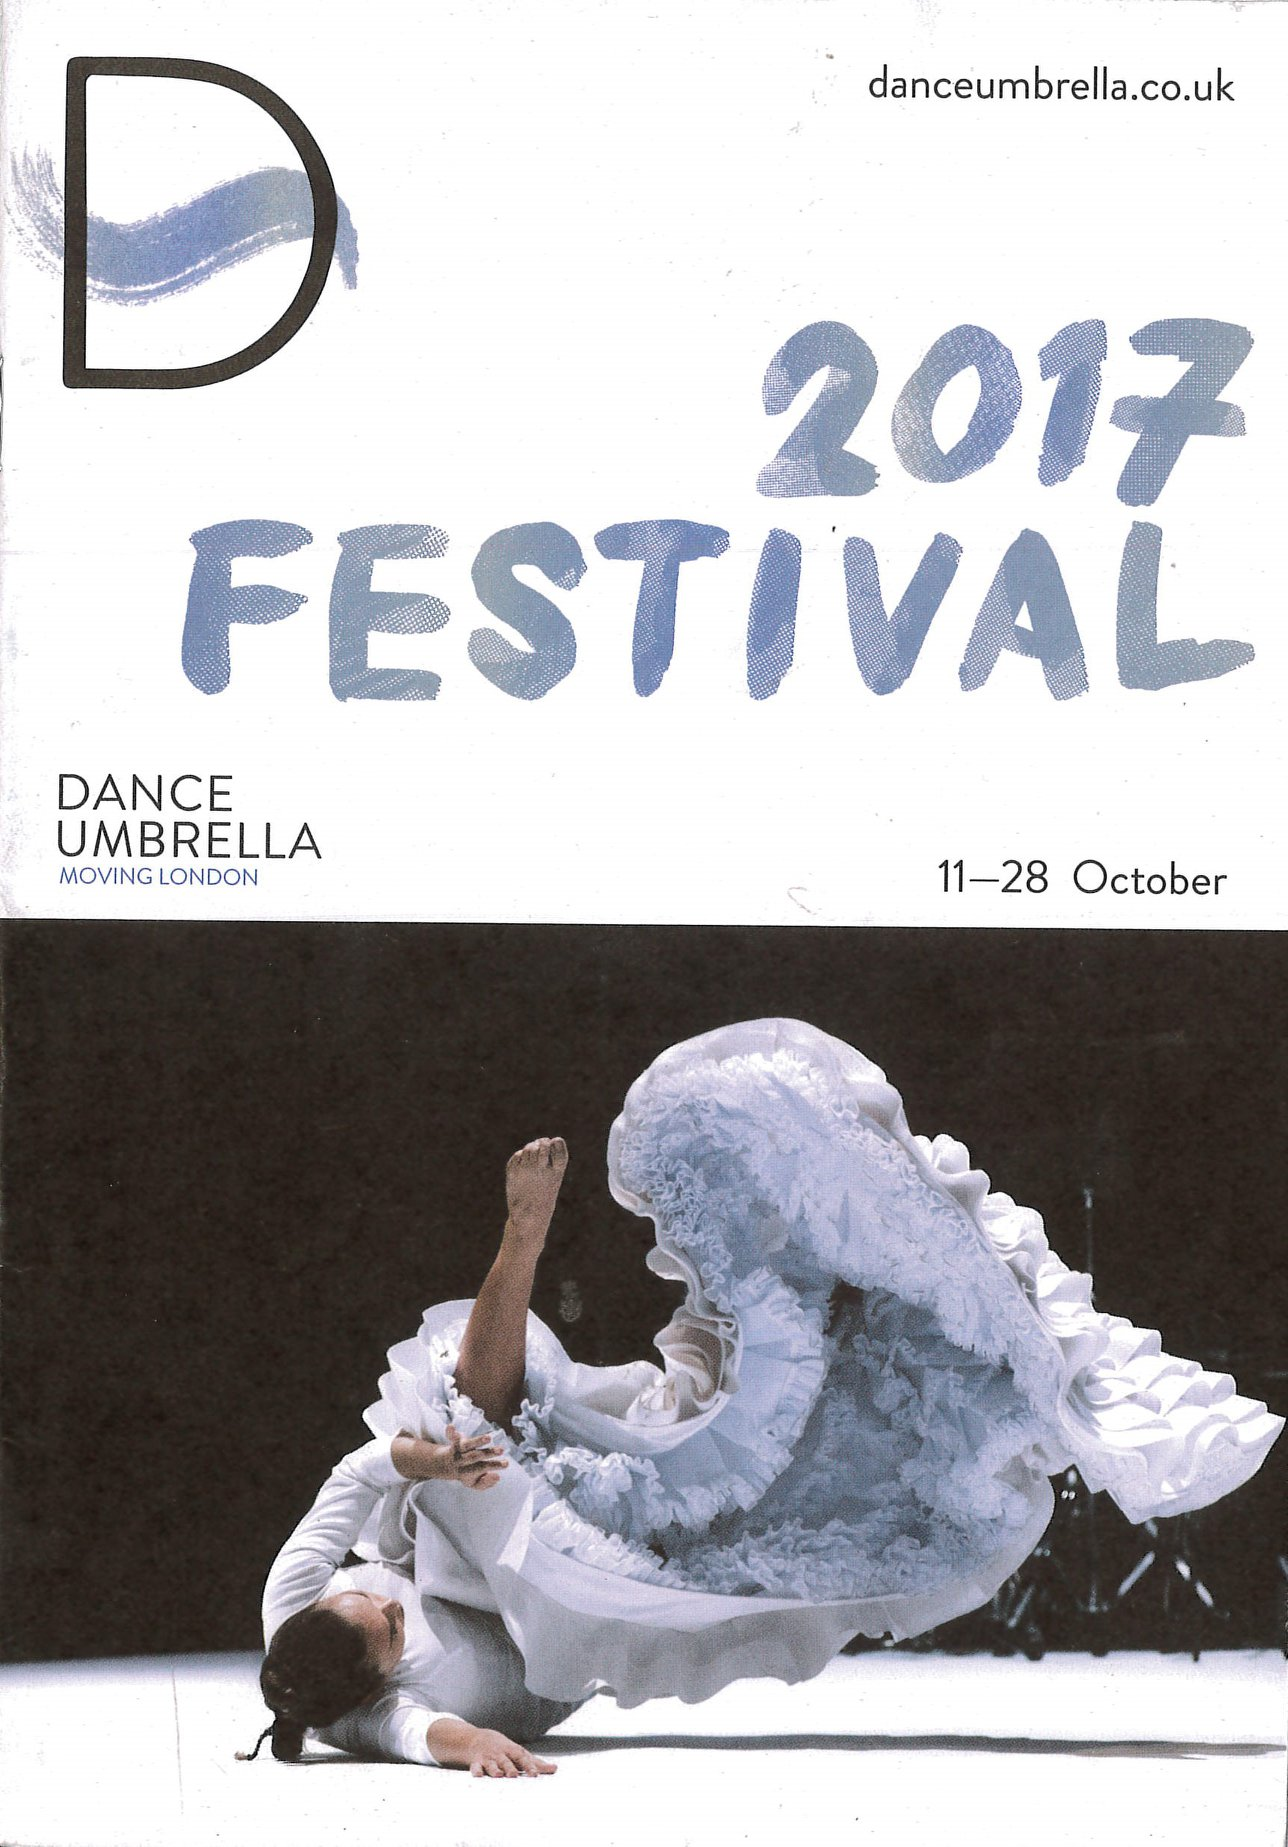 Dance Umbrella news: We close our 40 year countdown with Freddie Opoku-Addaie beginning a 3 year role…